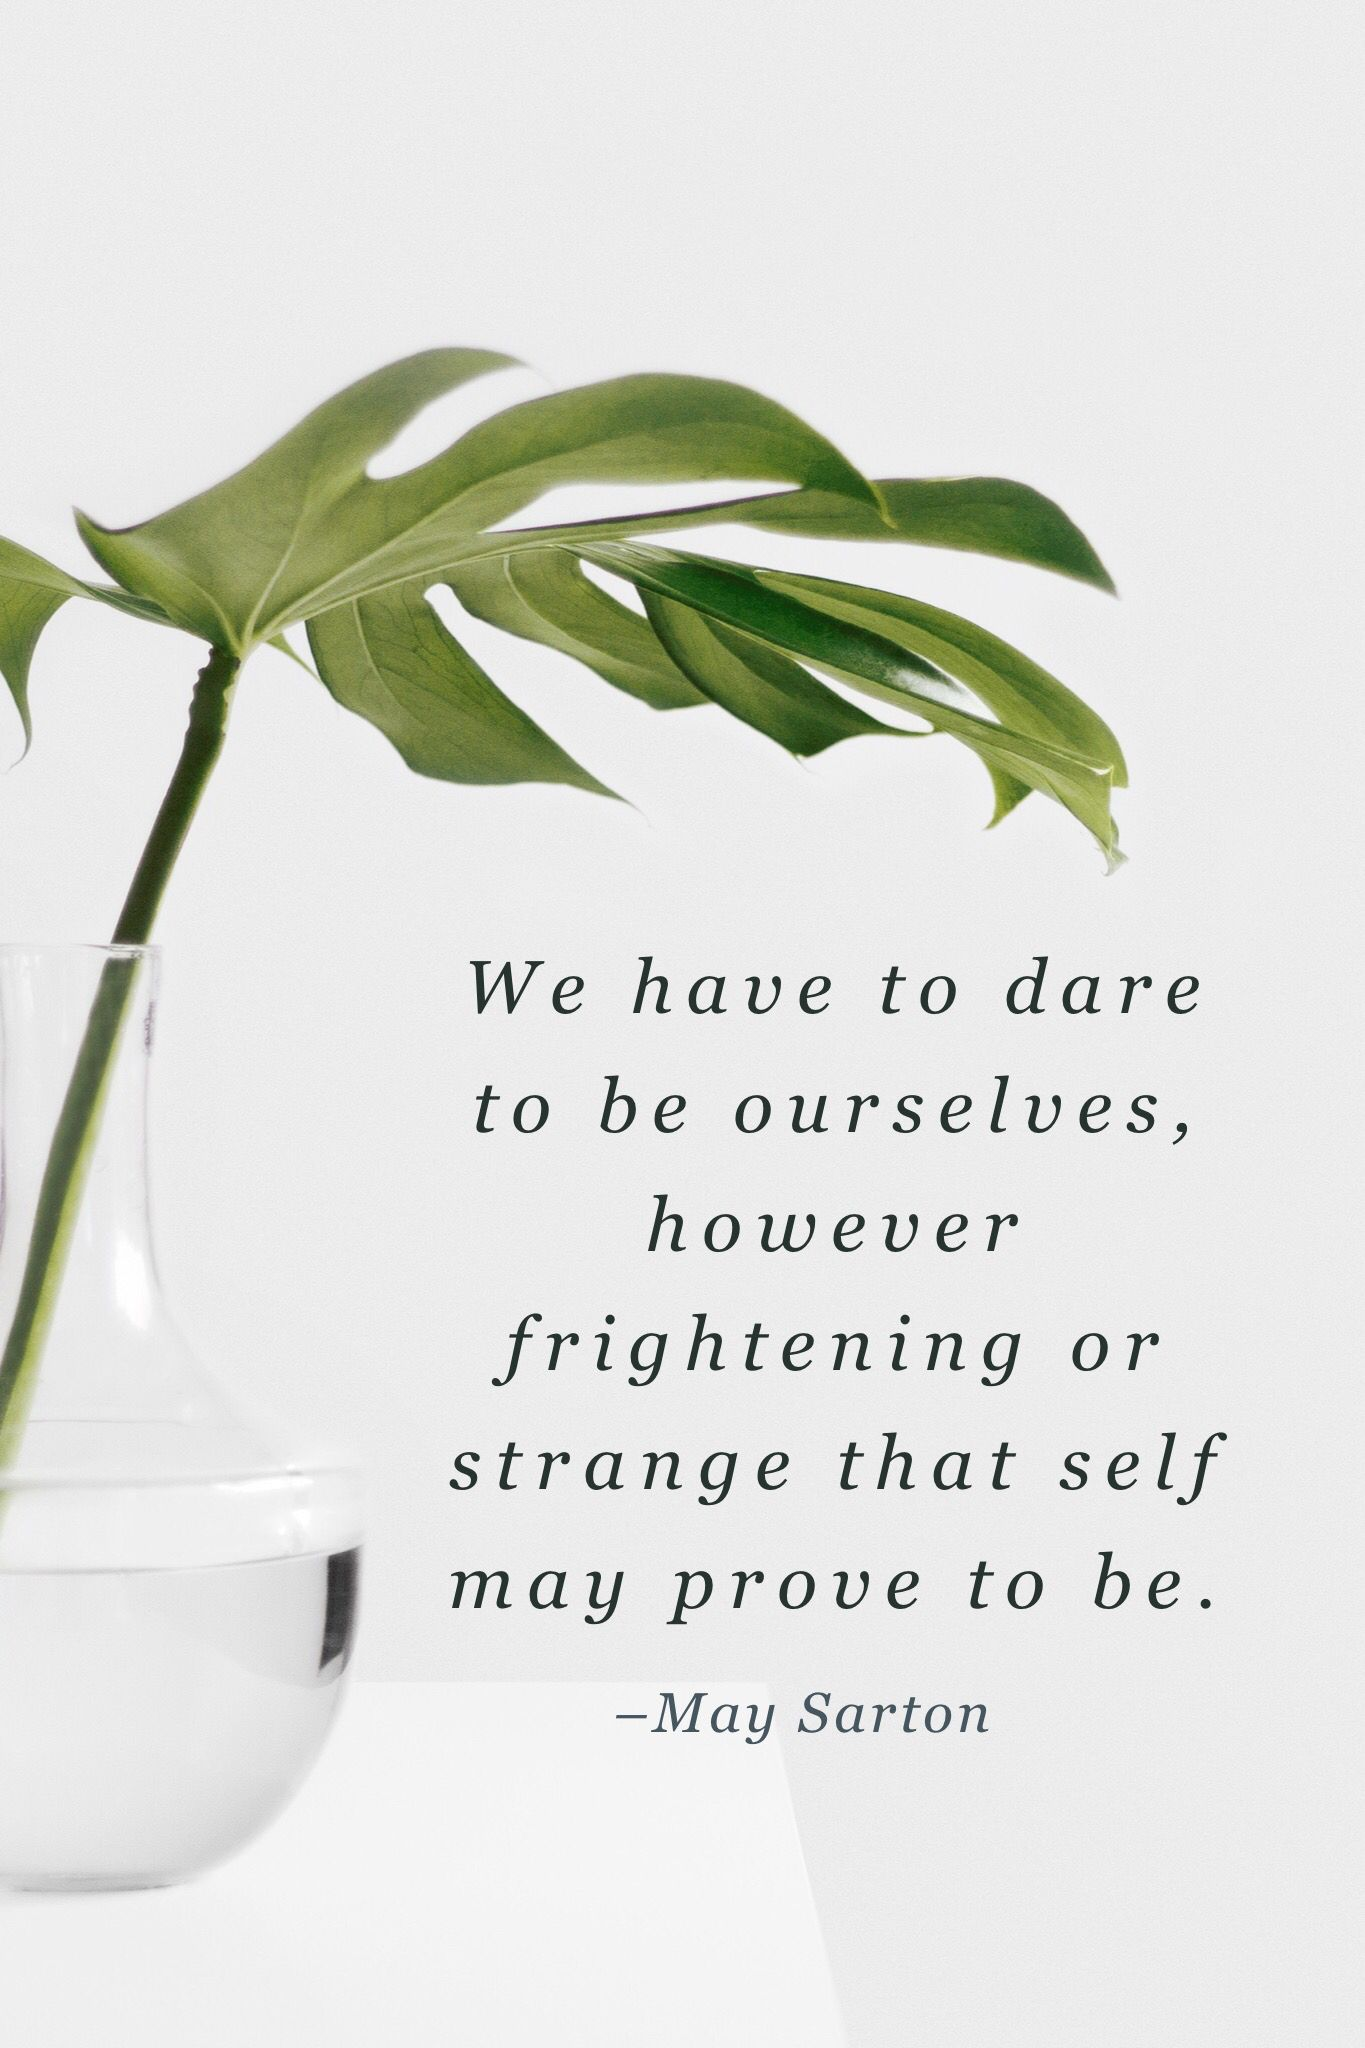 We have to dare to be ourselves, however frightening or strange that self may prove to be. –May Sarton  #authentic #authenticity #beyourself #brave